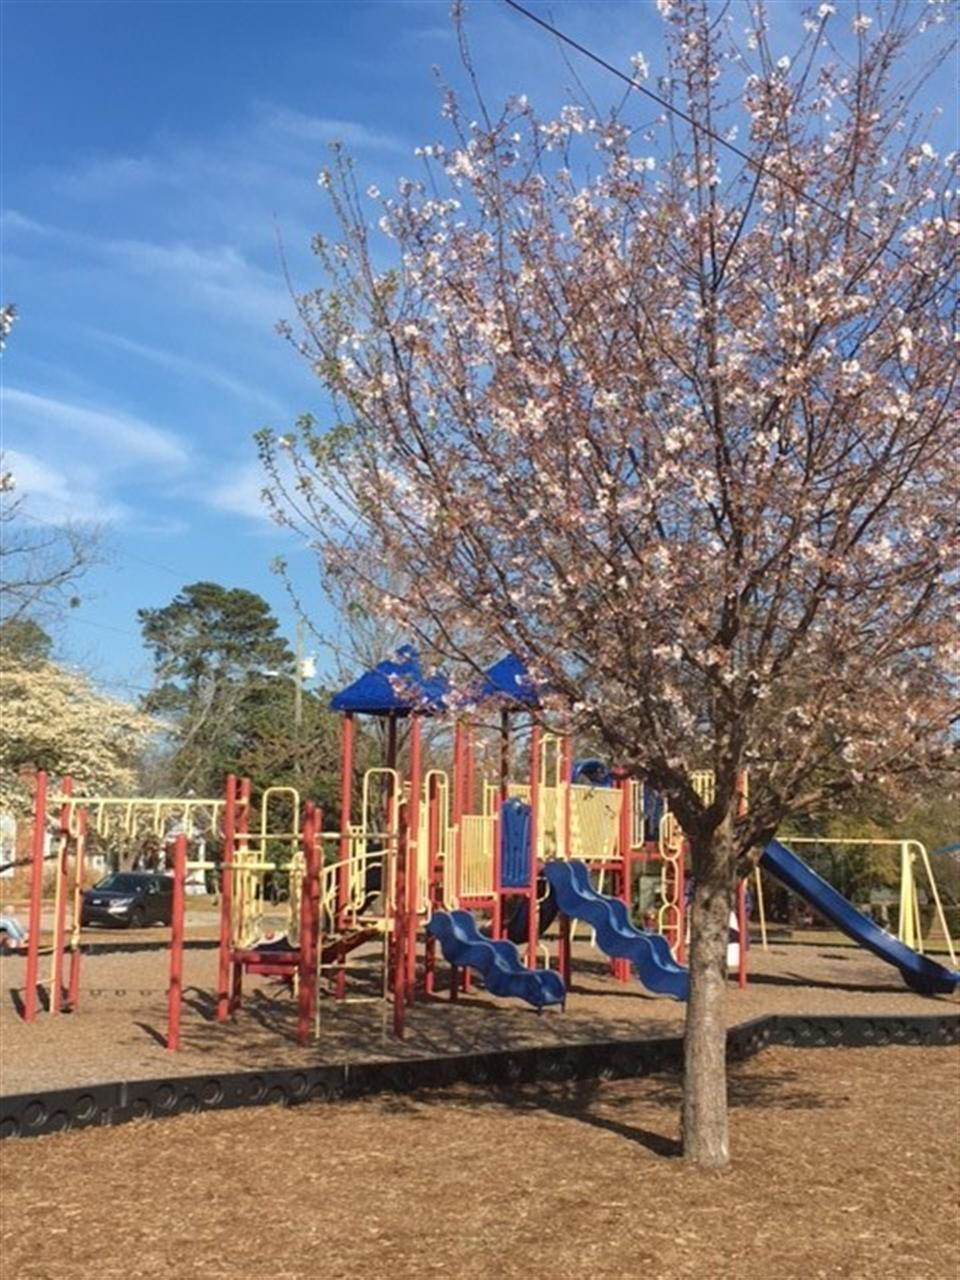 Playground at General Lee Park, Fayetteville NC